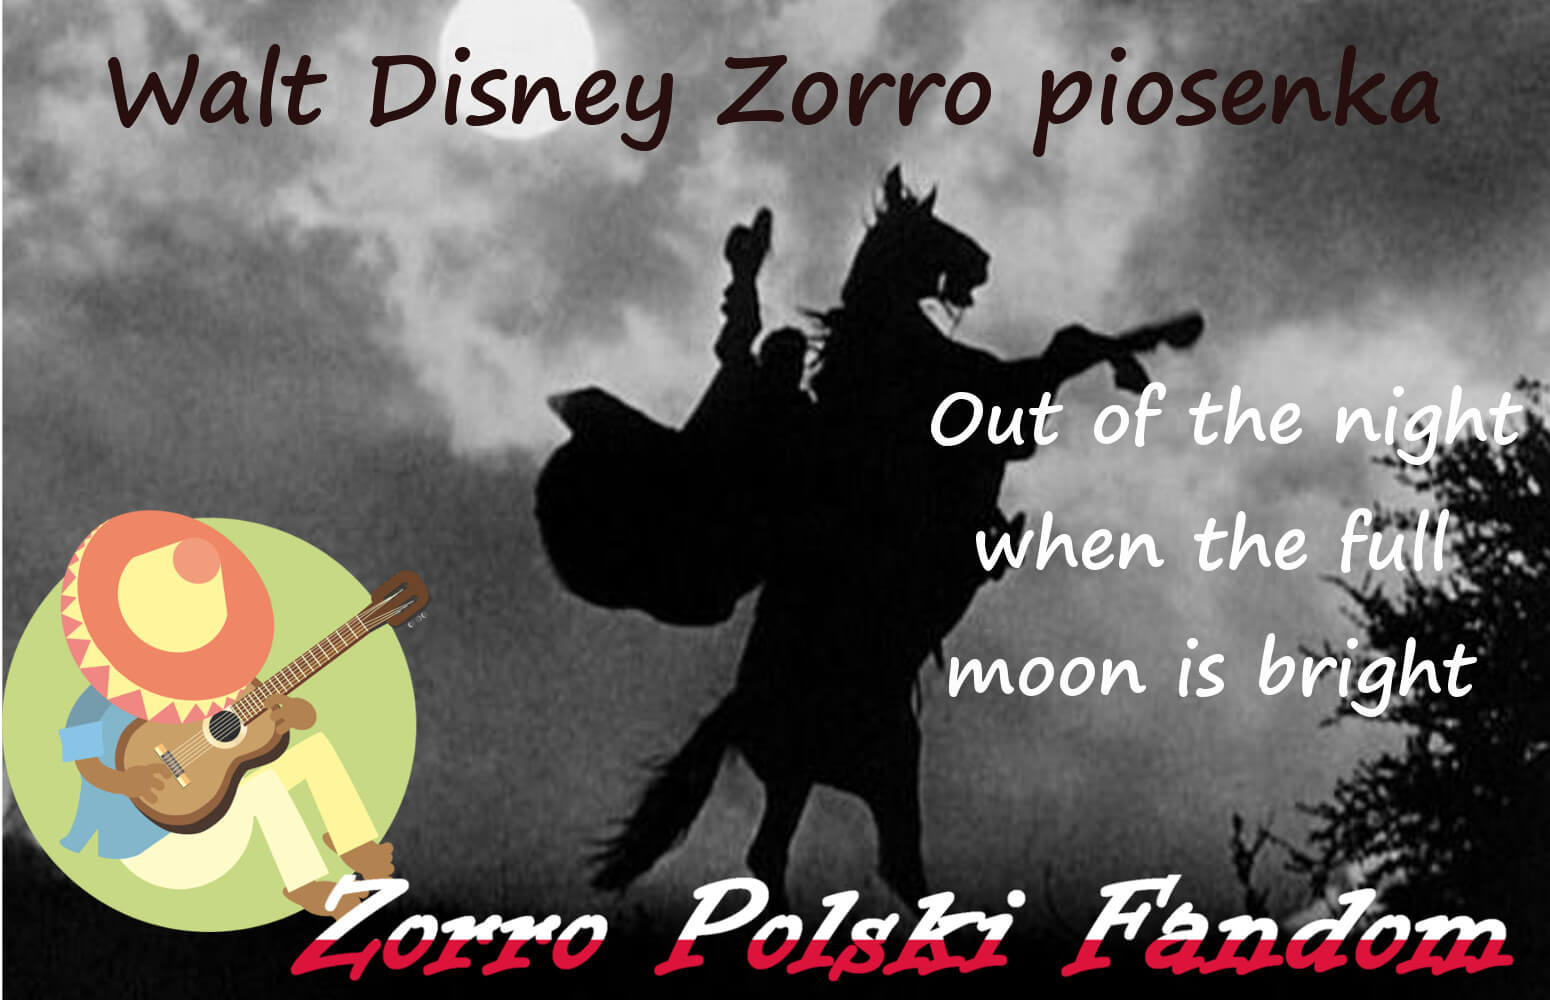 Walt Disney Zorro piosenka Out of the night when the full moon is bright